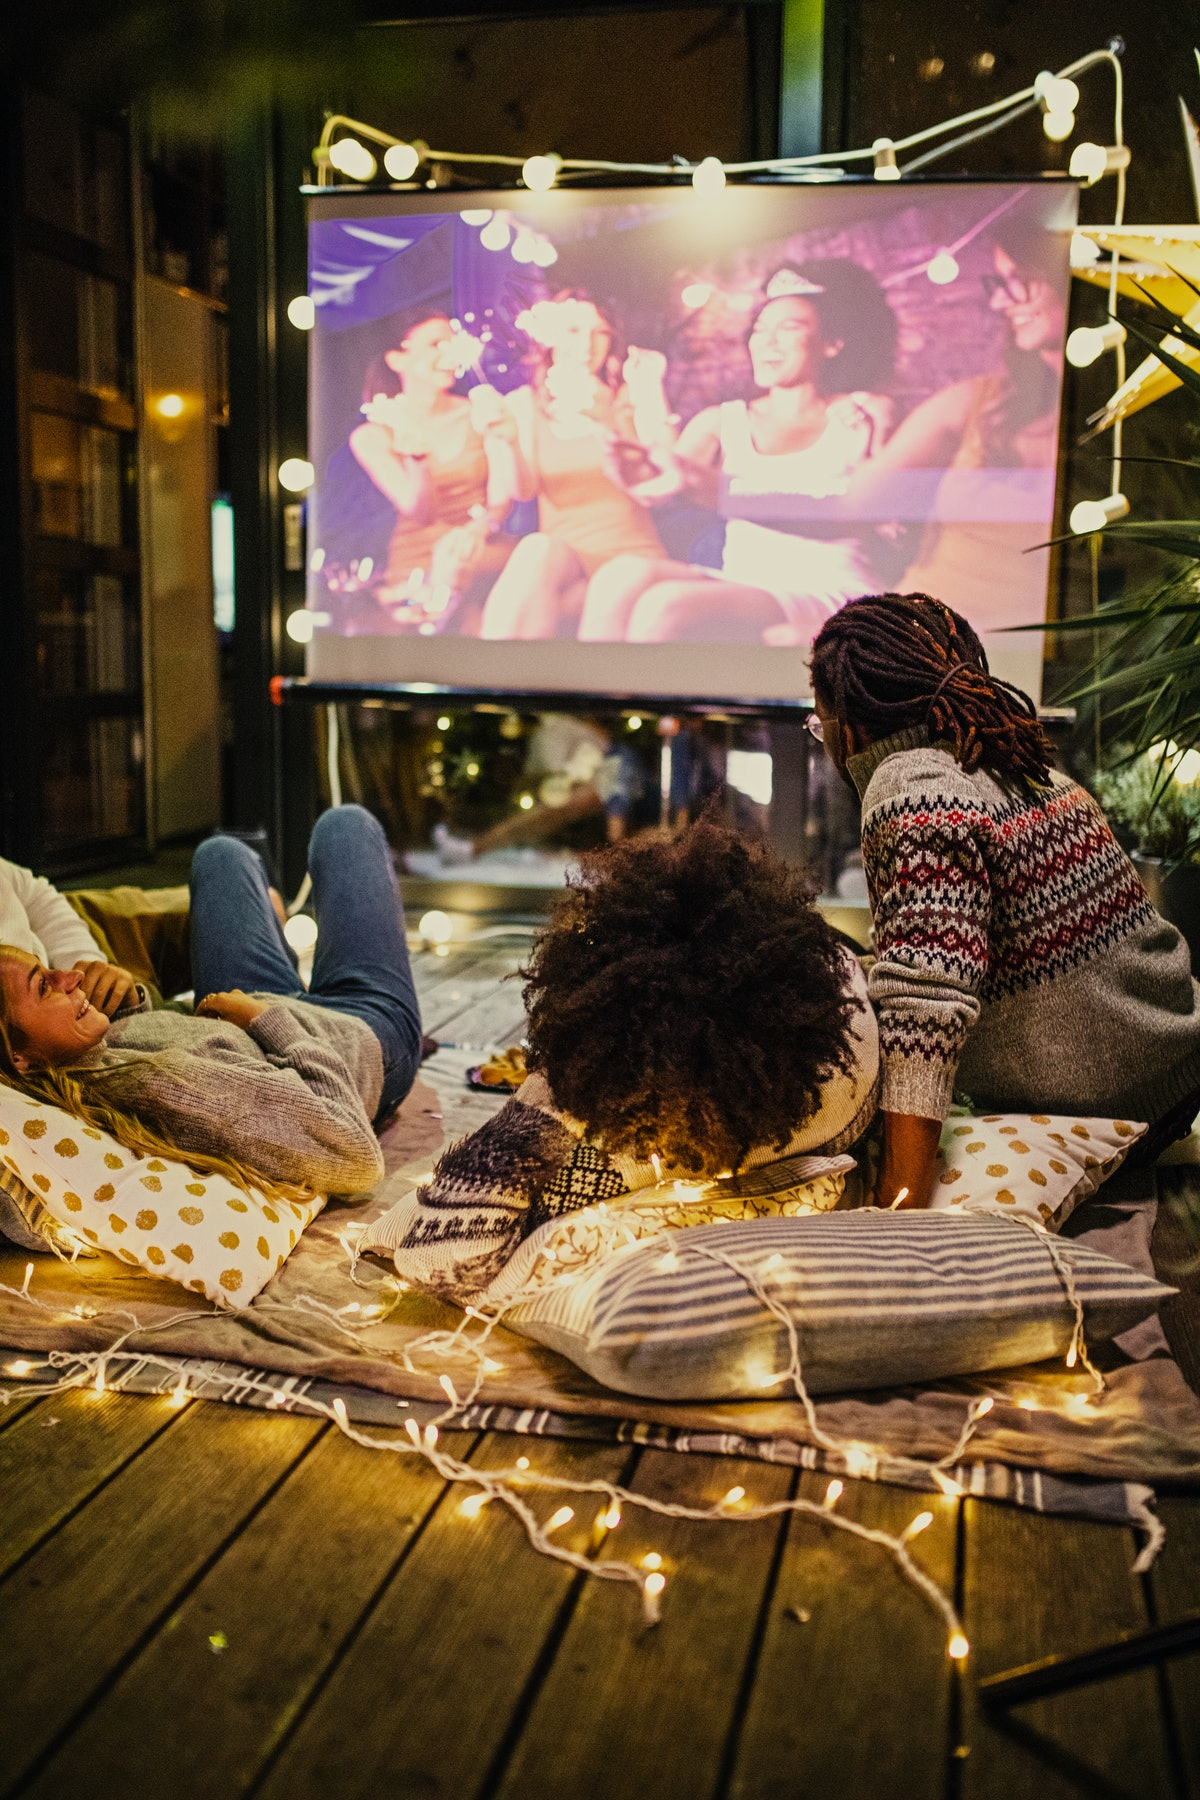 Two couples sit on a blanket that's lined with lights and watch a movie on a projected screen.